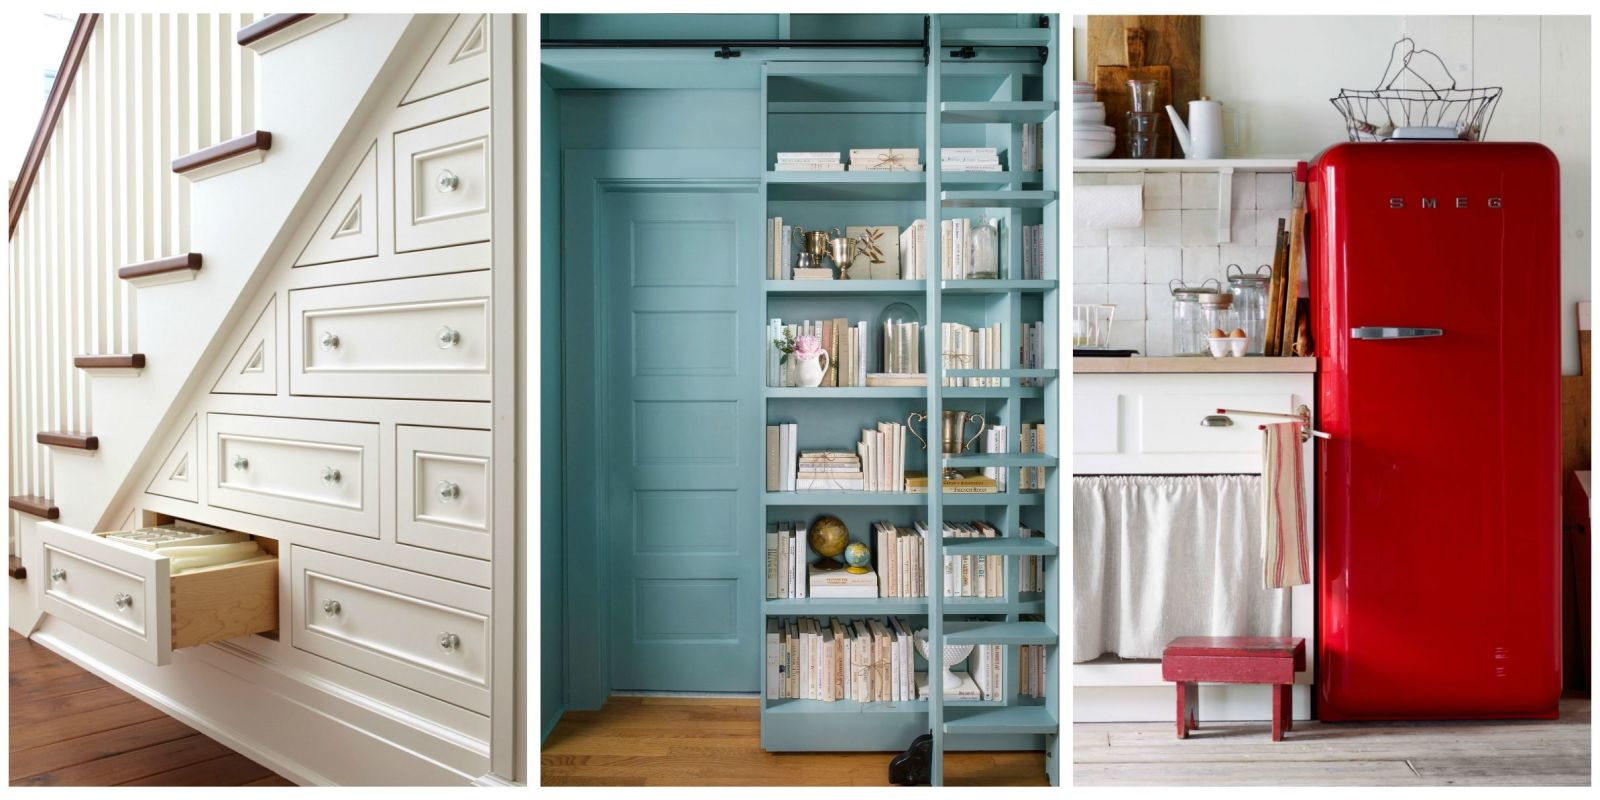 . 17 Small Space Decorating Ideas   Organization for Small Rooms